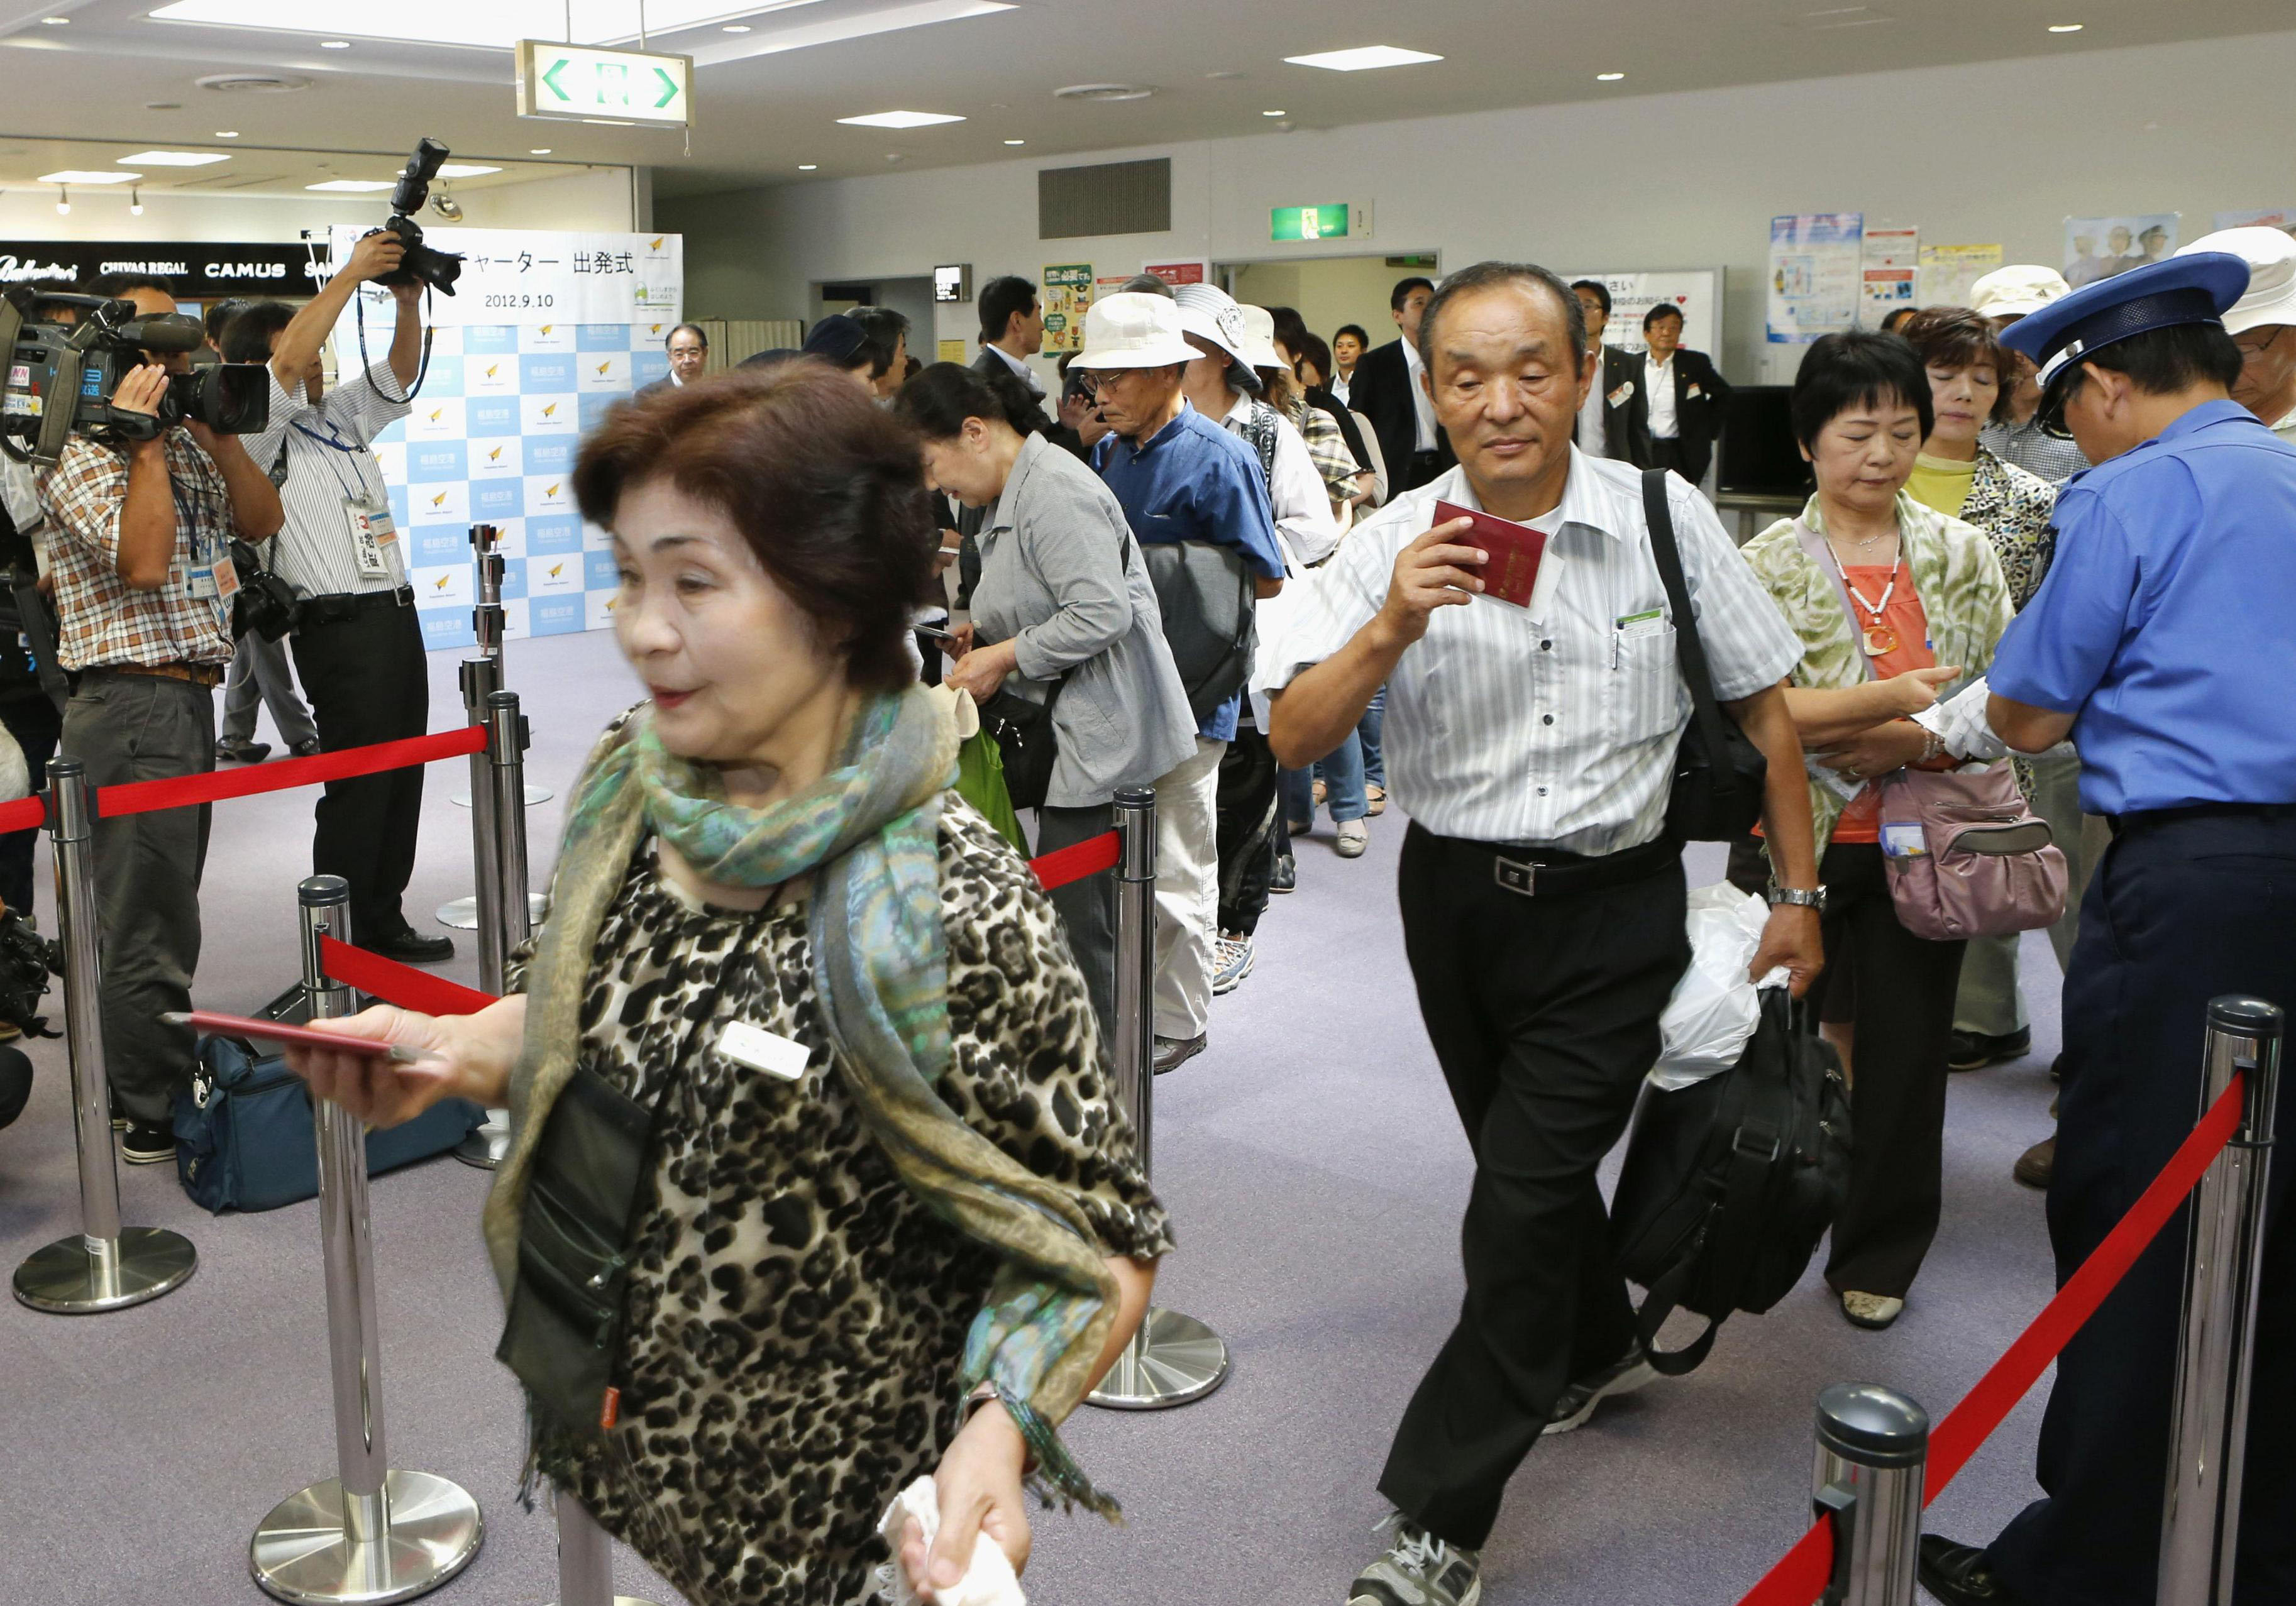 Climbing back: Passengers prepare Monday to board a China Eastern Airlines chartered flight bound for Shanghai at Fukushima Airport, which resumed international services for the first time since the March 2011 disasters. | KYODO